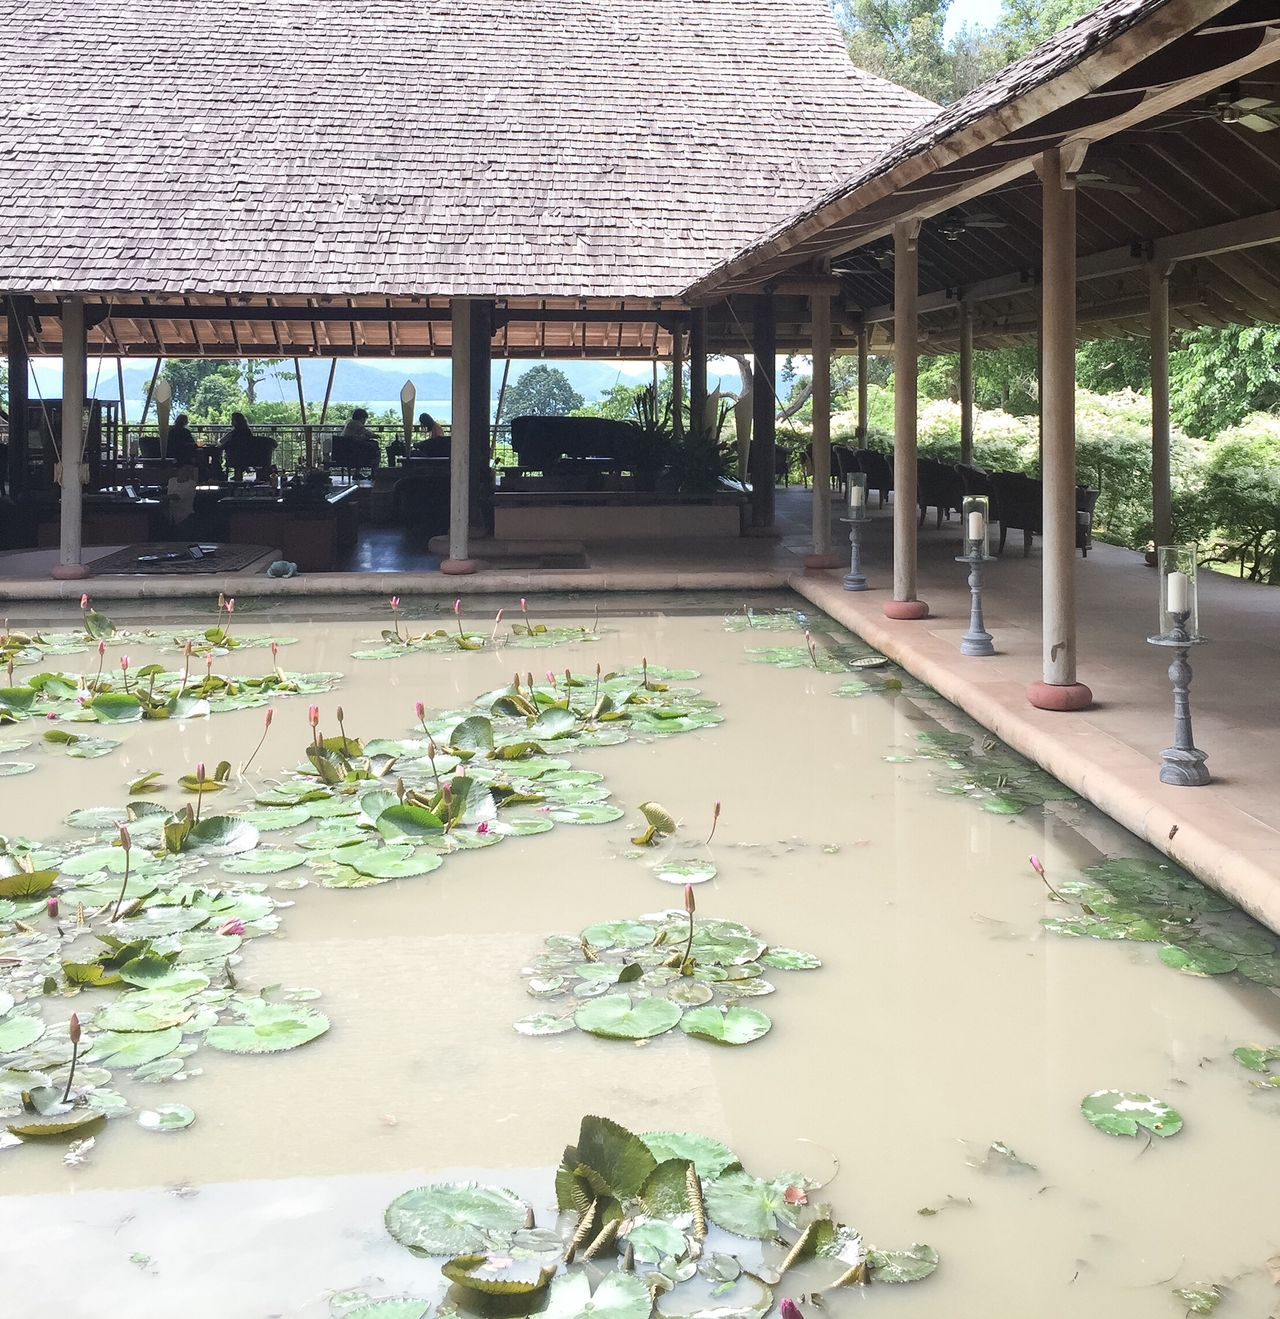 Datai Resort Langkawi Island Malaysia Architecture Nature Water Lily Pond Luxury Travel Vacations EyeEmNewHere EyeEmNewHere